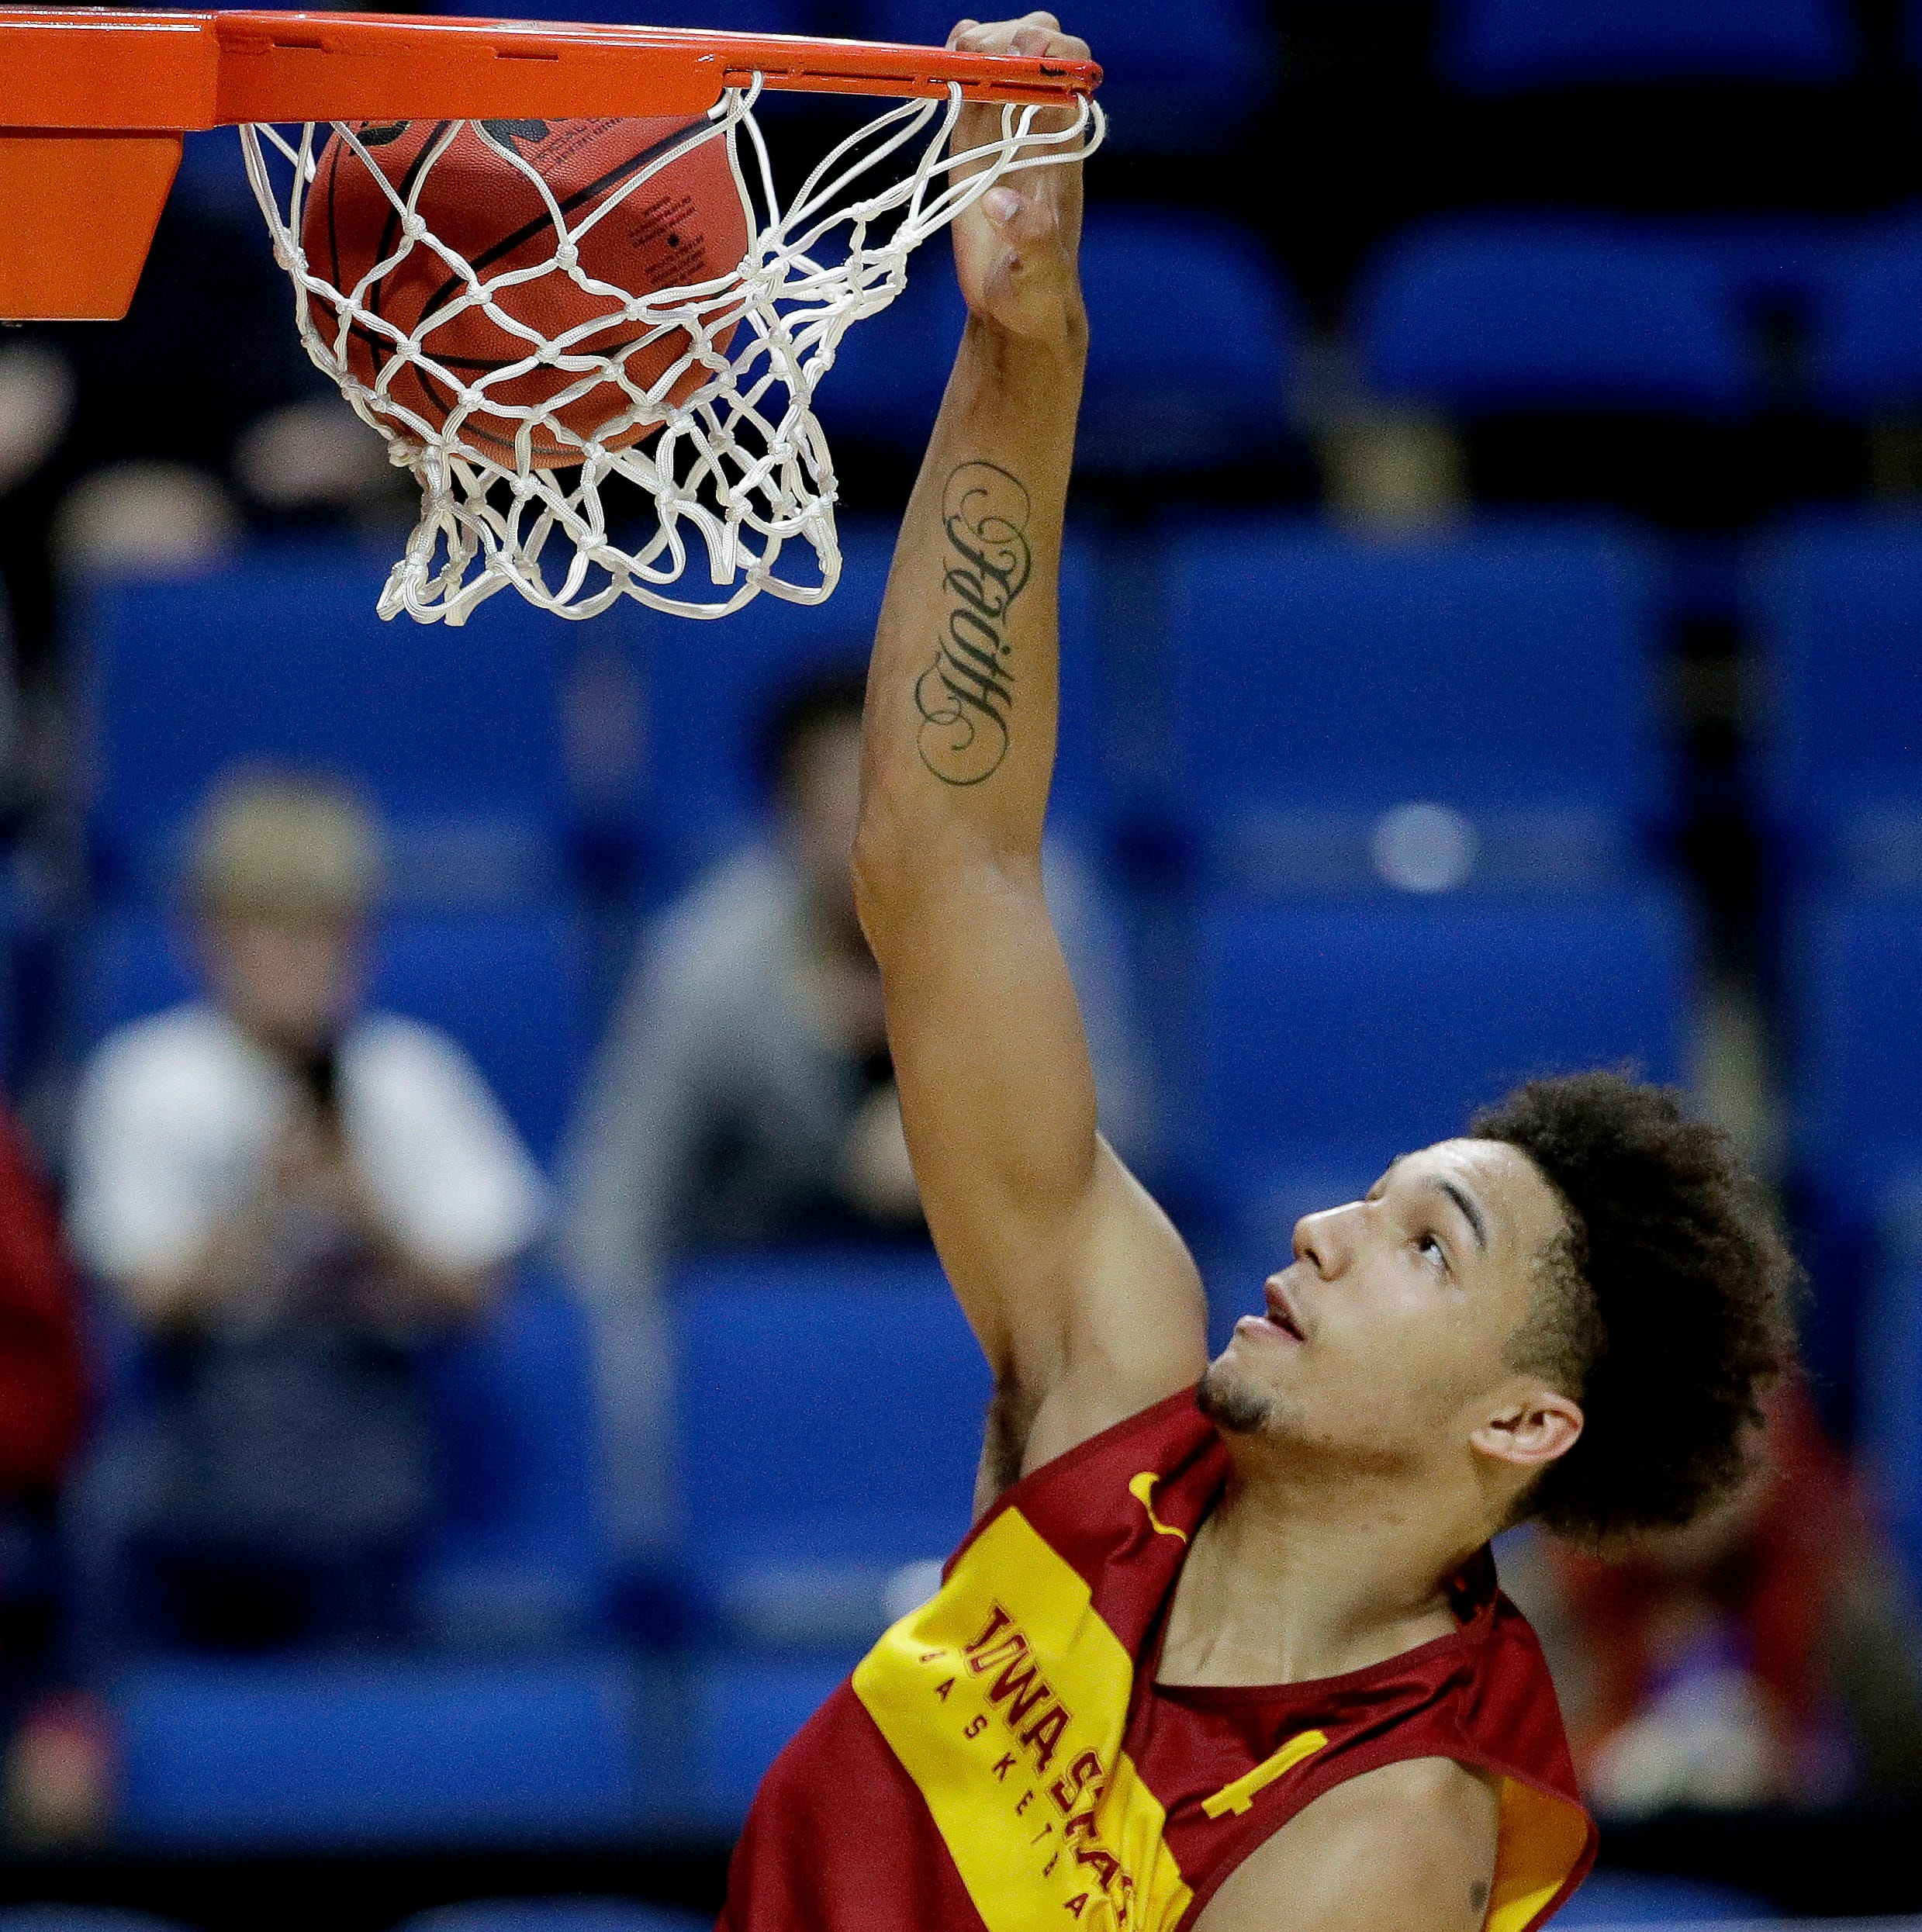 Peterson: Iowa State's freshmen face final exams after passing regular-season, Big 12 Tournament tests